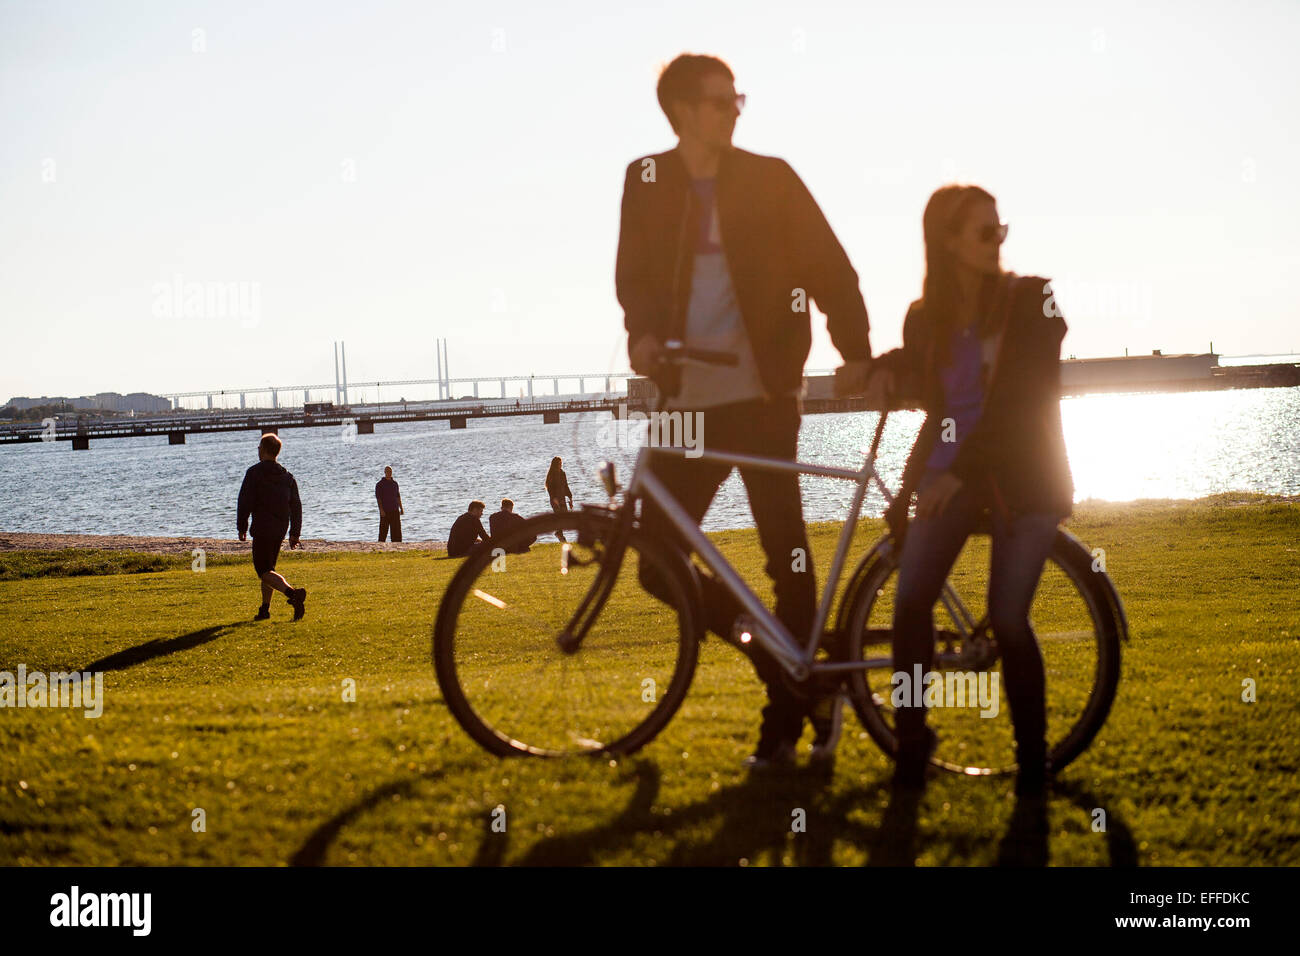 Couple with bicycle on grassy landscape by sea against clear sky - Stock Image